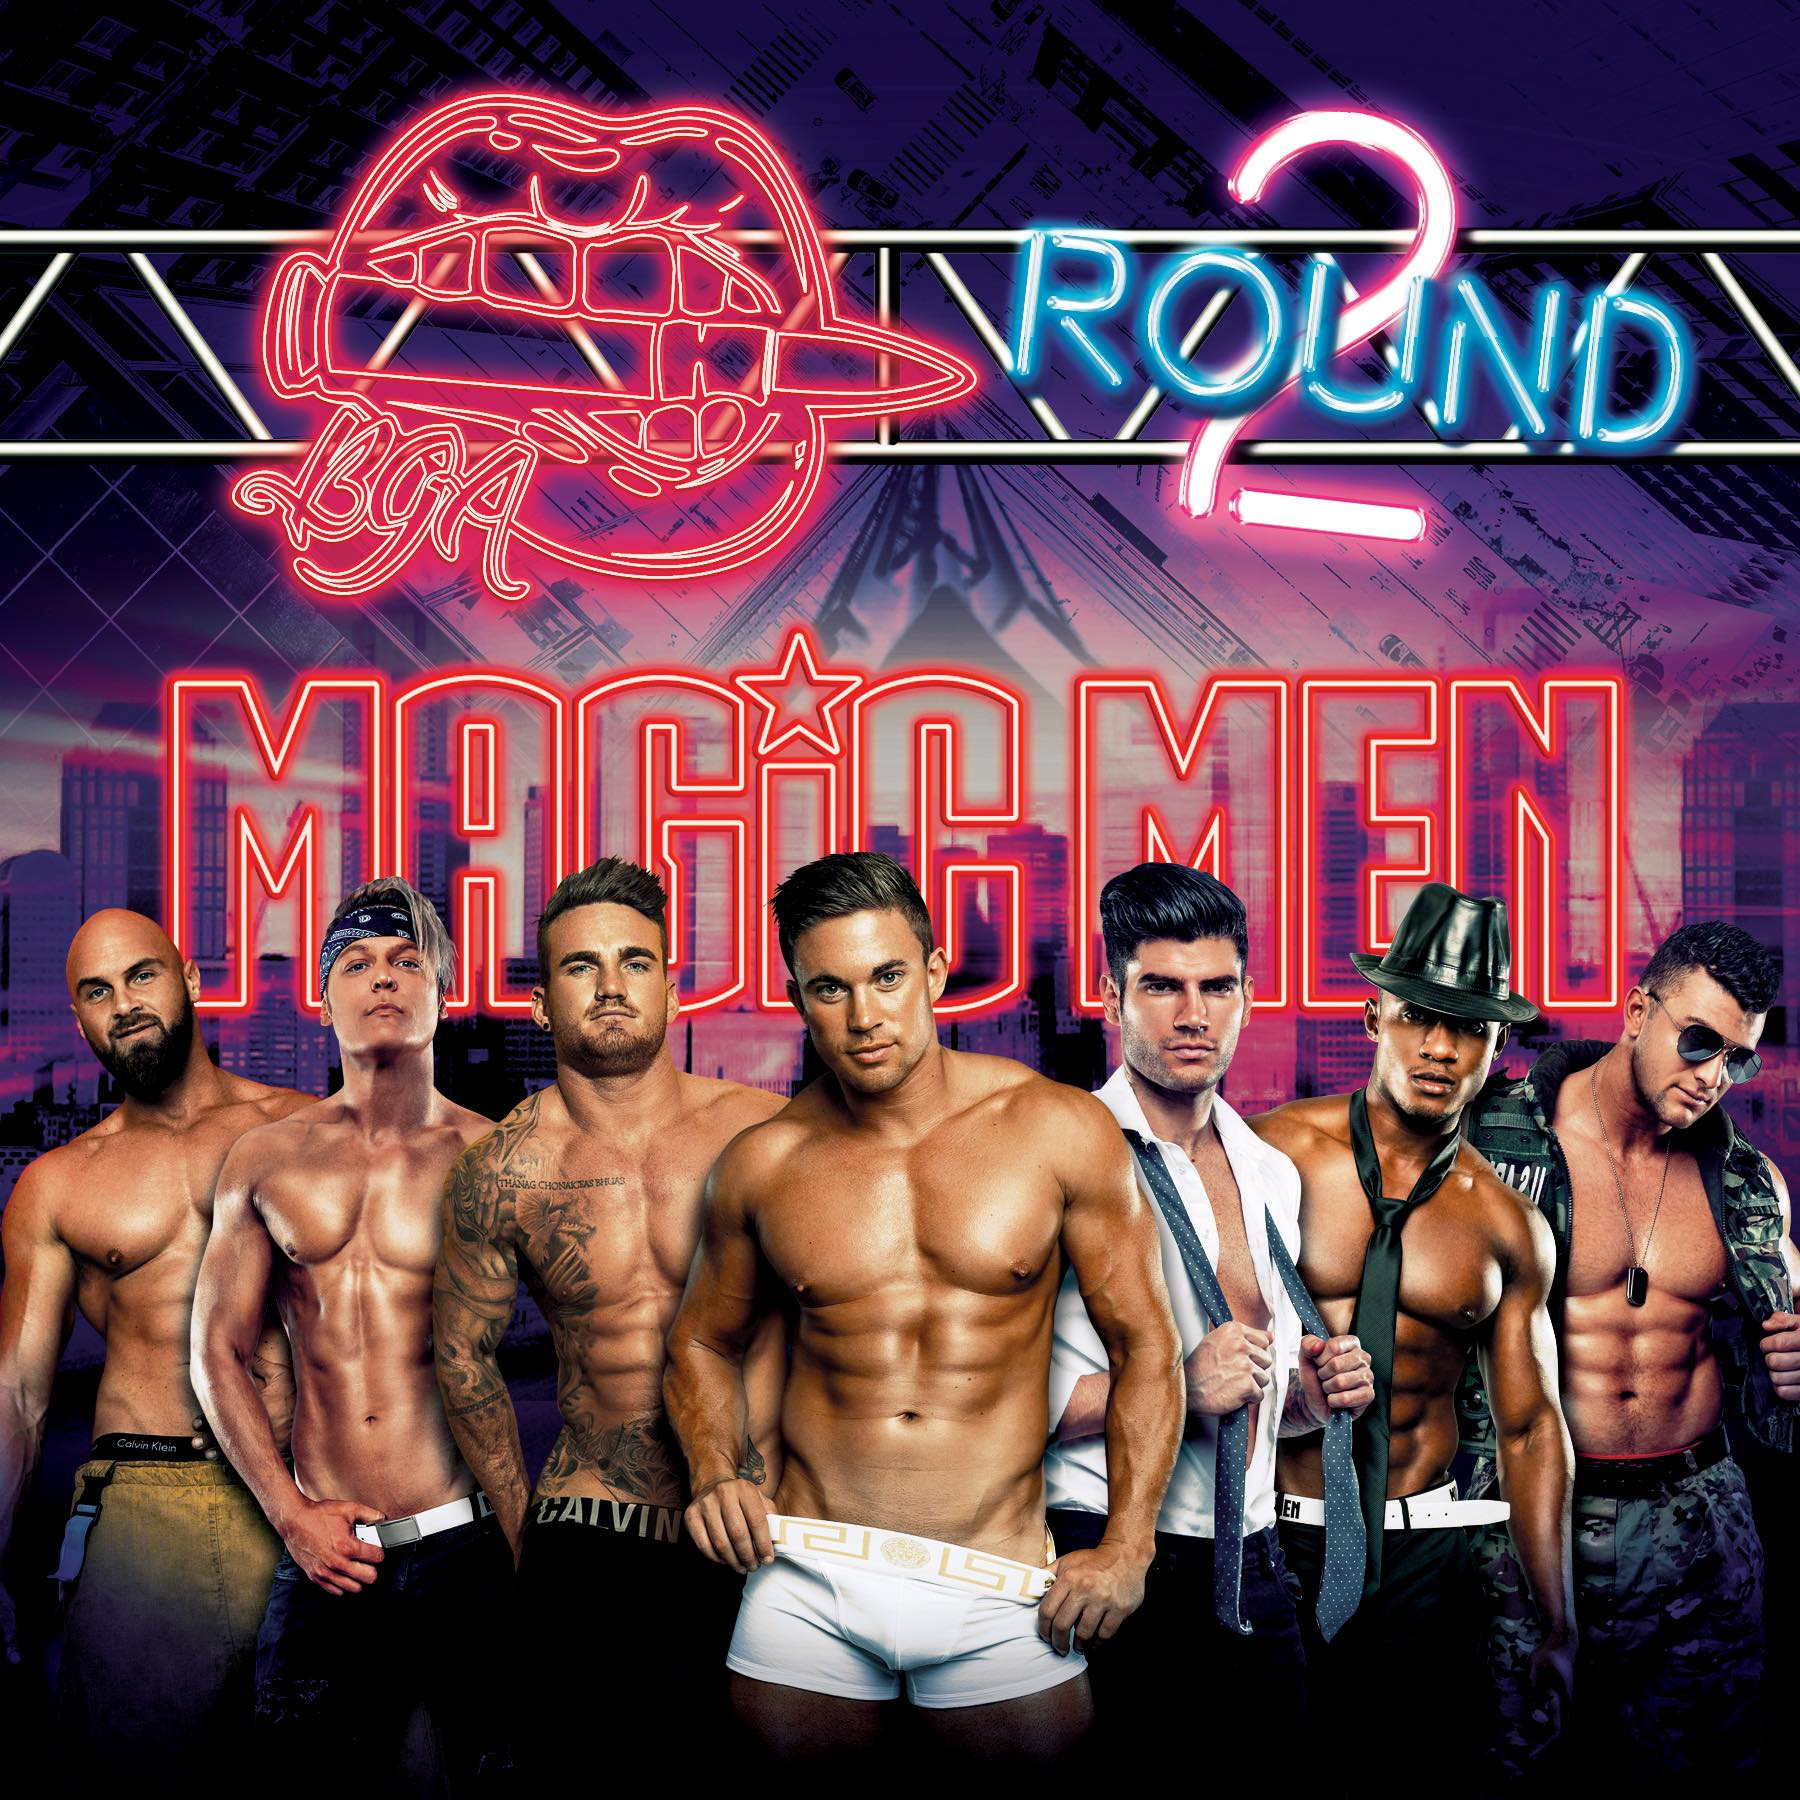 Tickets for BGA/MAGIC MEN PRE PARTY @ SEXPO in Brisbane from Ticketbooth